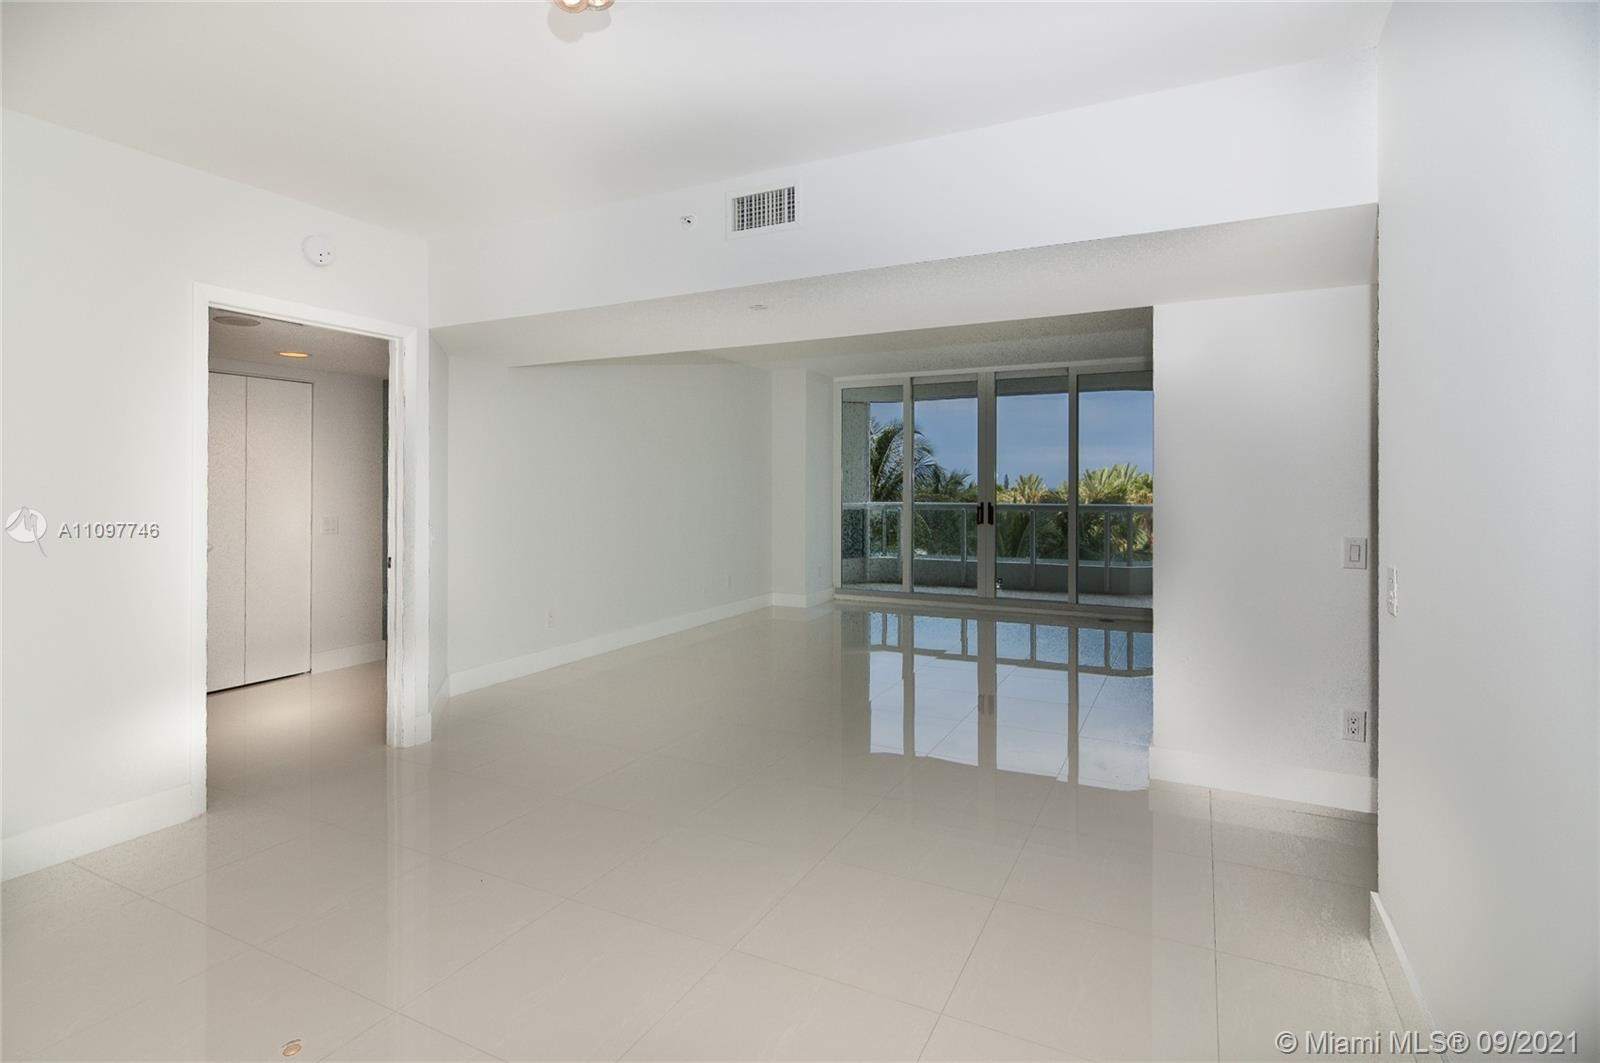 SOUTH TOWER AT THE POINT,THE POINT Condo,For Sale,SOUTH TOWER AT THE POINT,THE POINT Brickell,realty,broker,condos near me